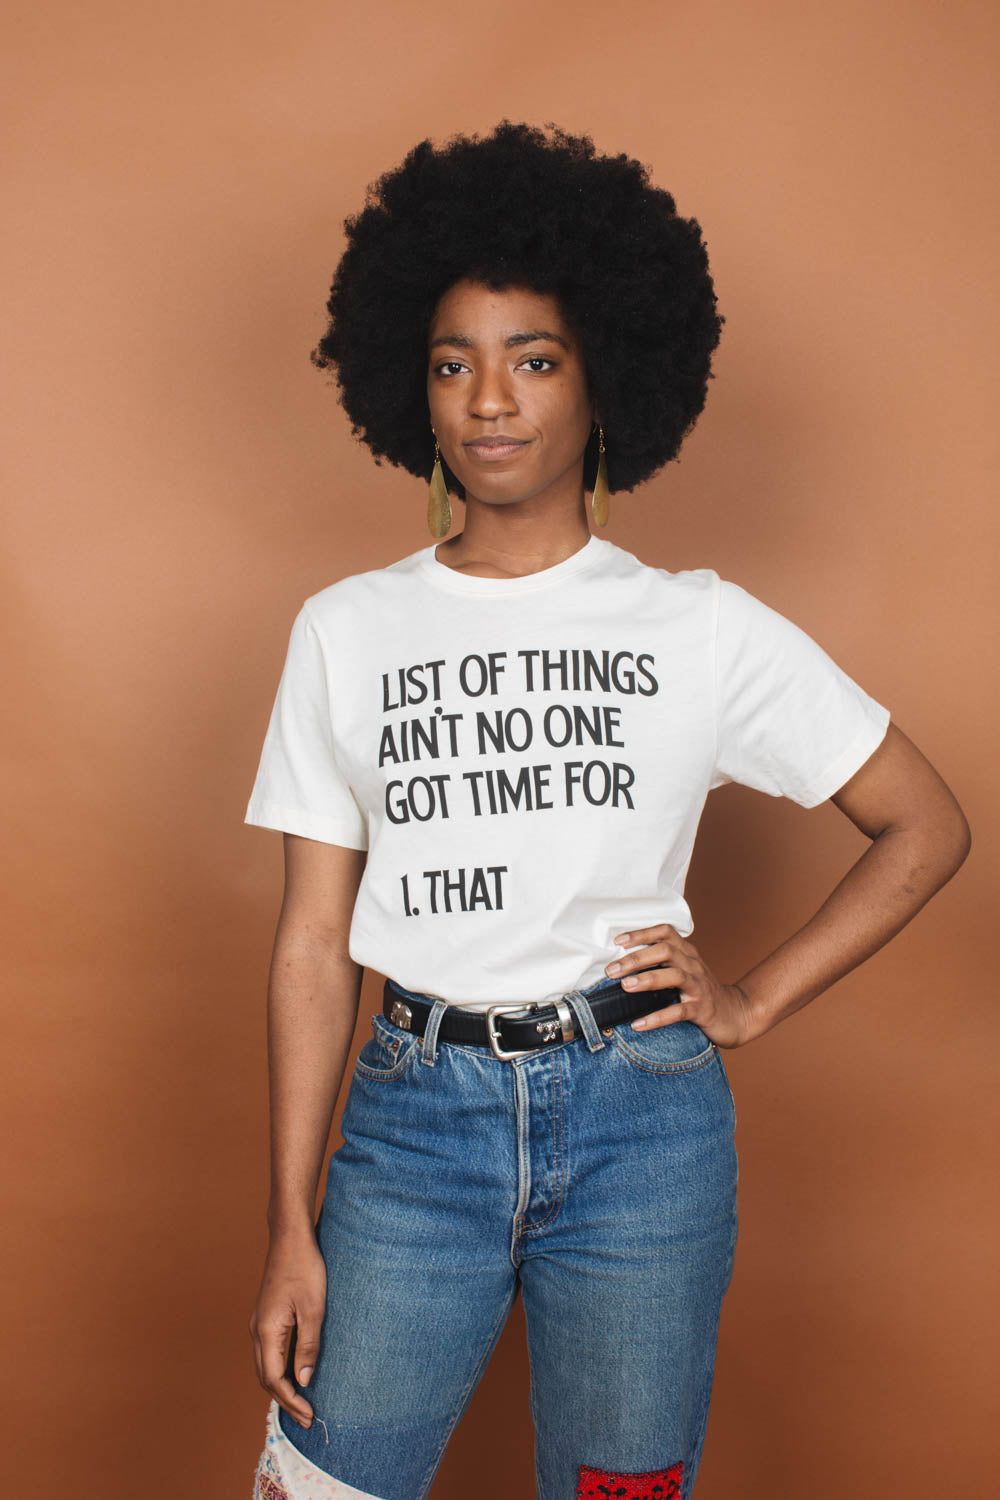 List of Things Ain't No One Got Time For | Unisex Crewneck